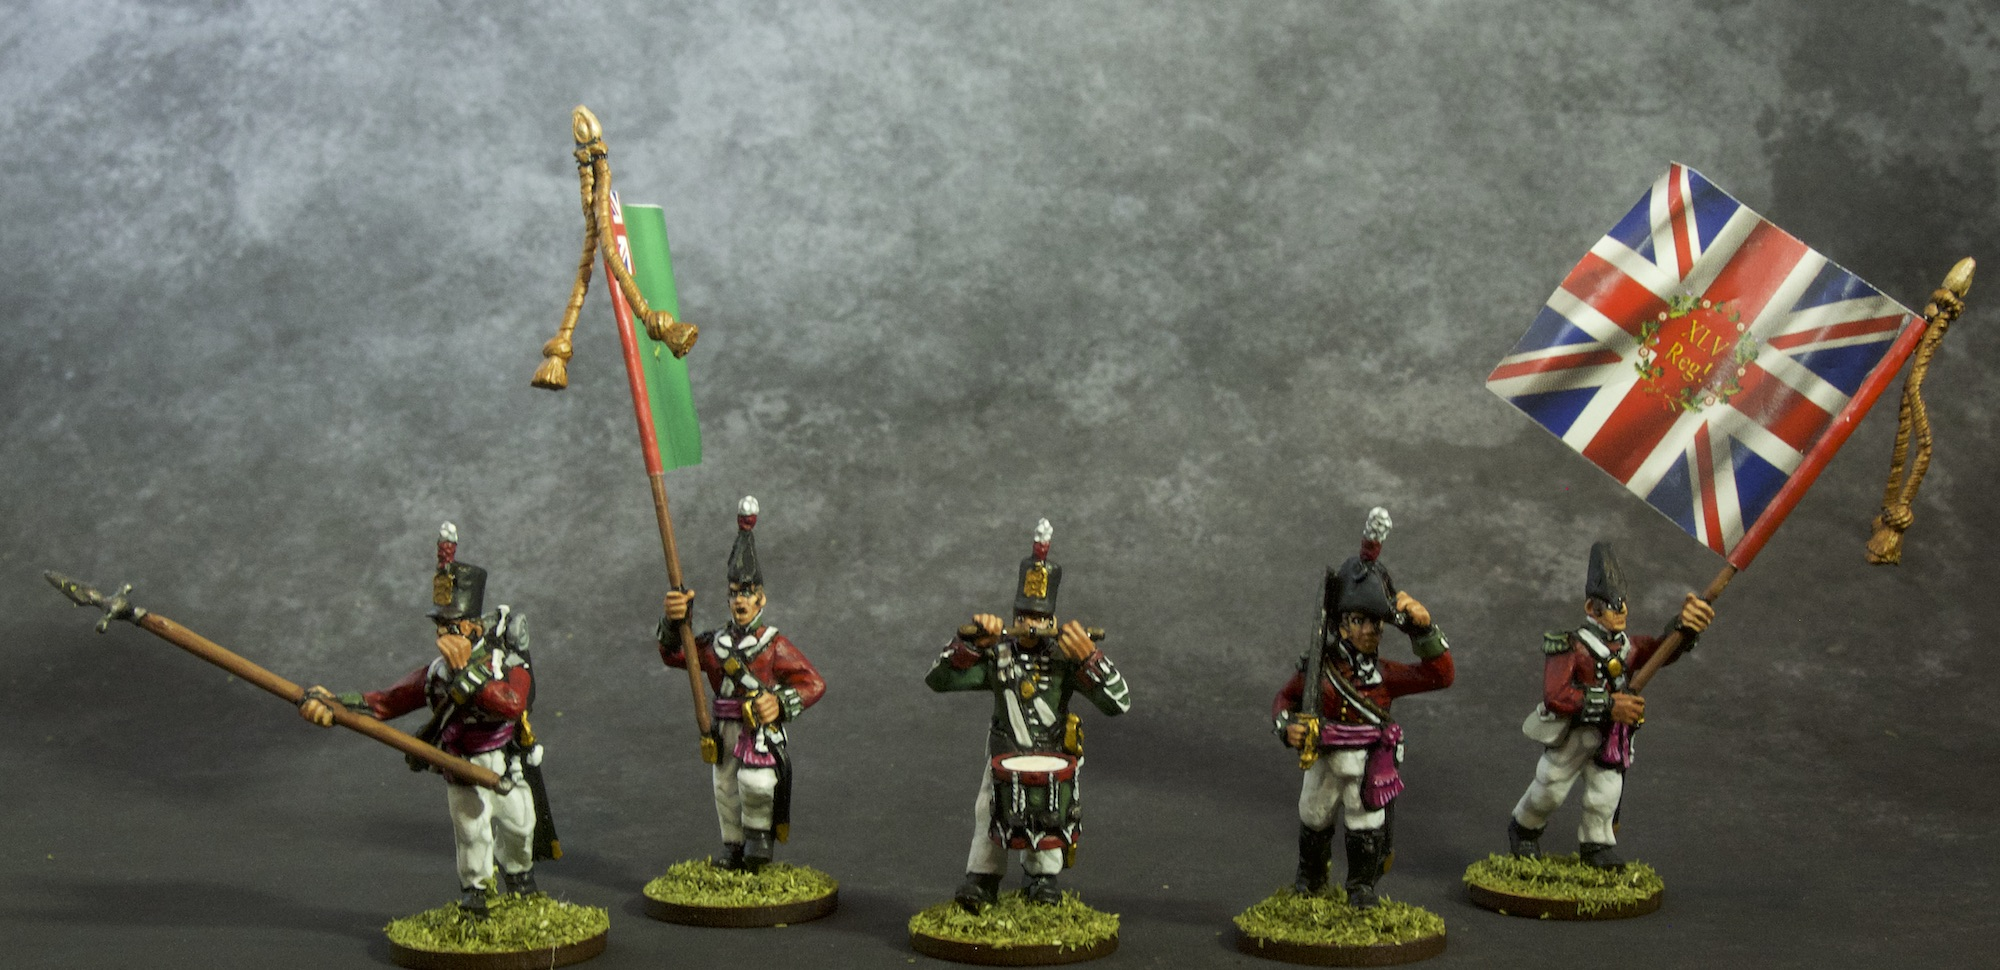 Painted 28mm Miniature Napoleonic British Infantry